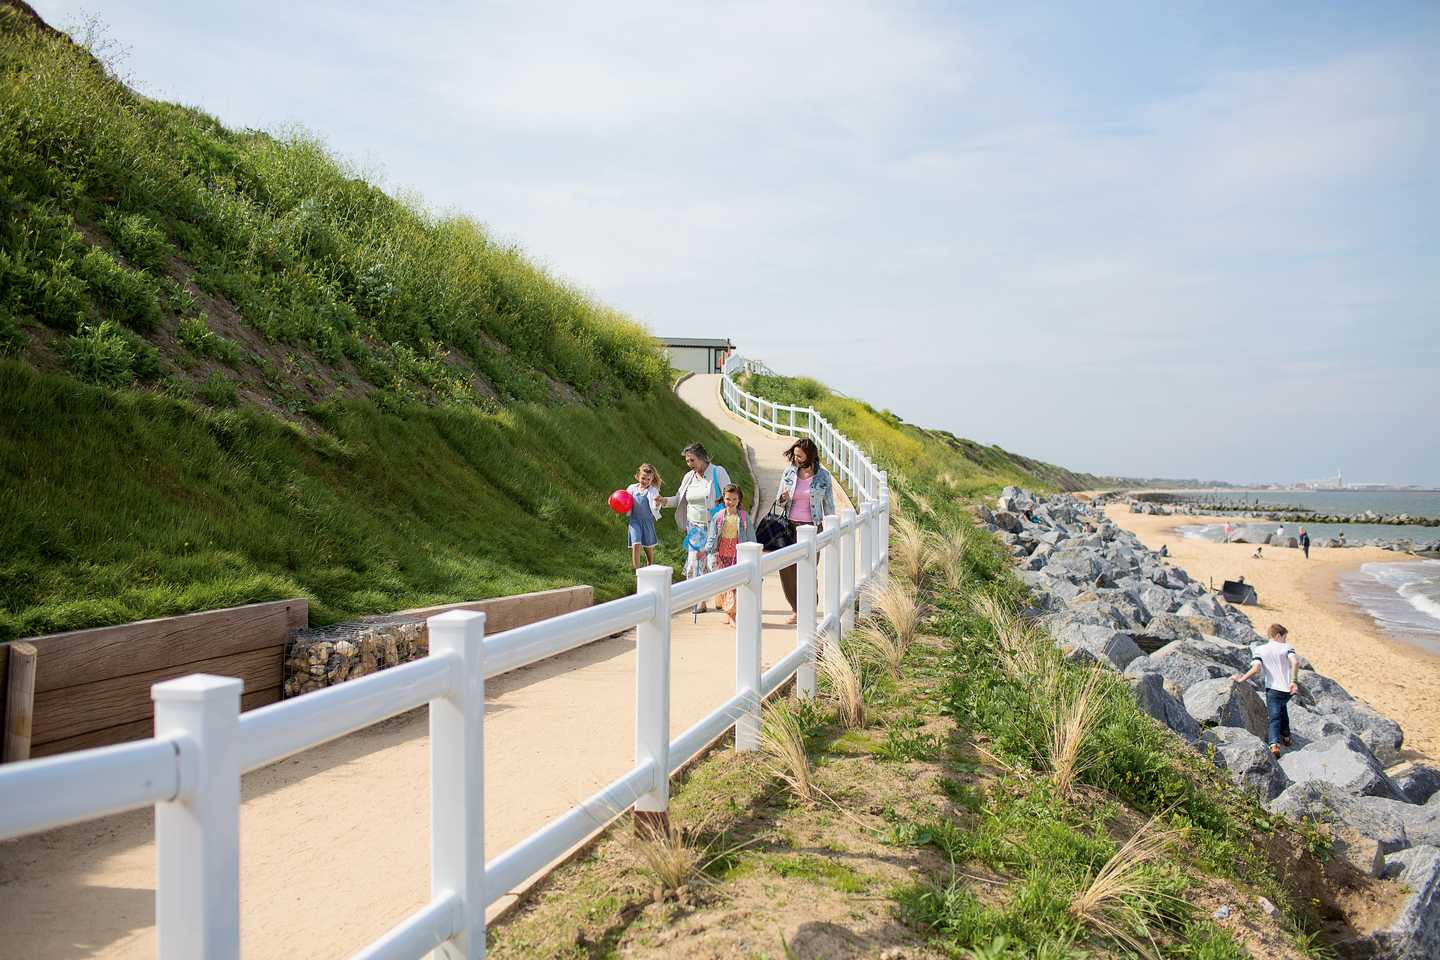 A view of the walkway between the park and the beach, the path has a white fence along the side